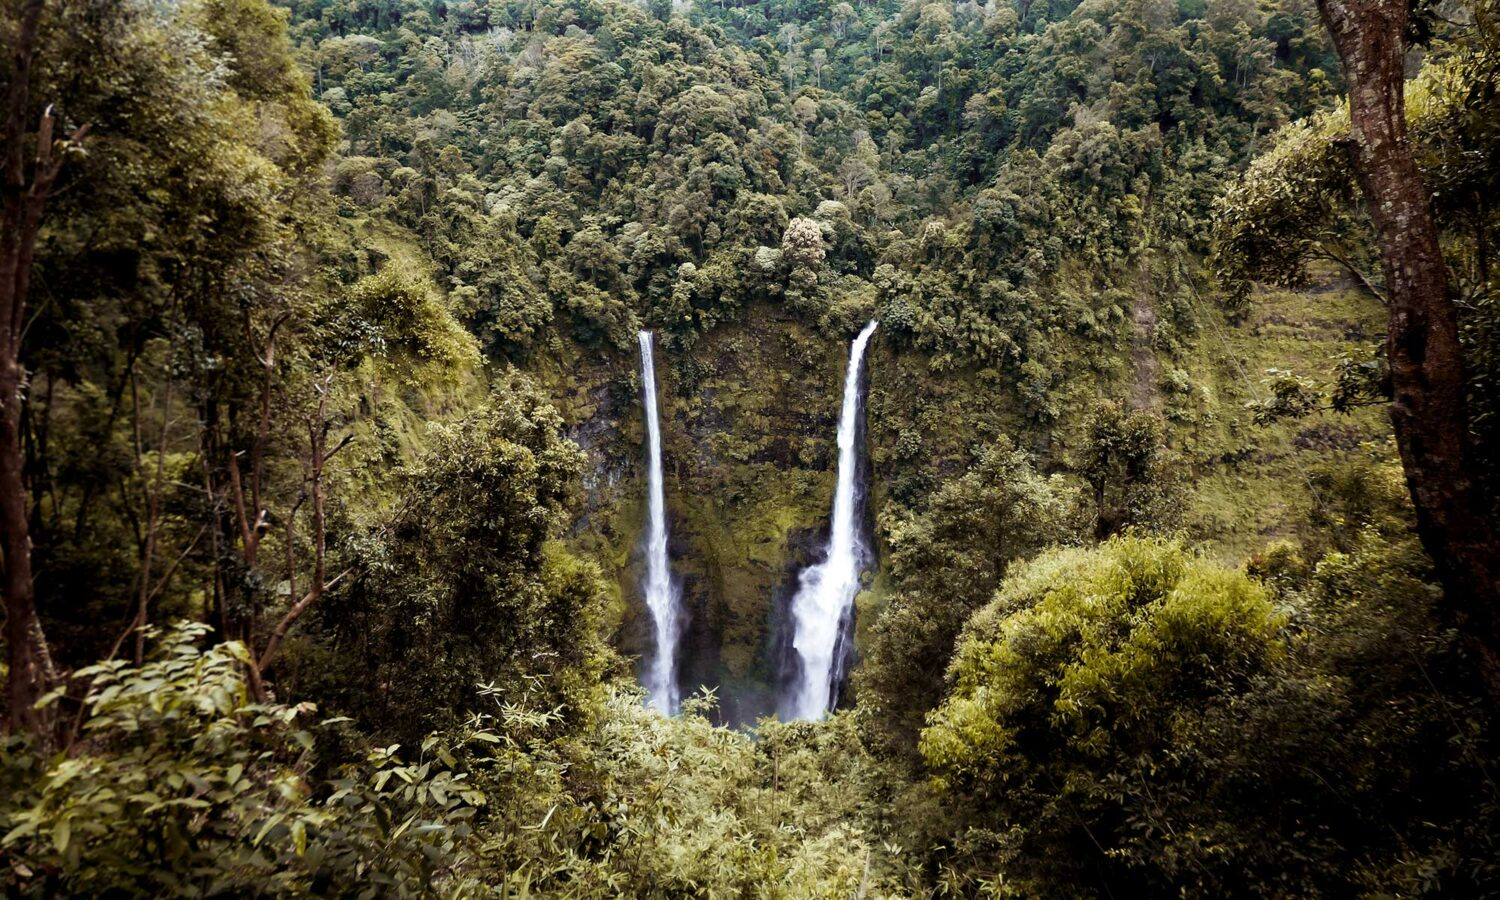 Tropical waterfalls peppered around the volcanic landscape of the Bolaven Plateau